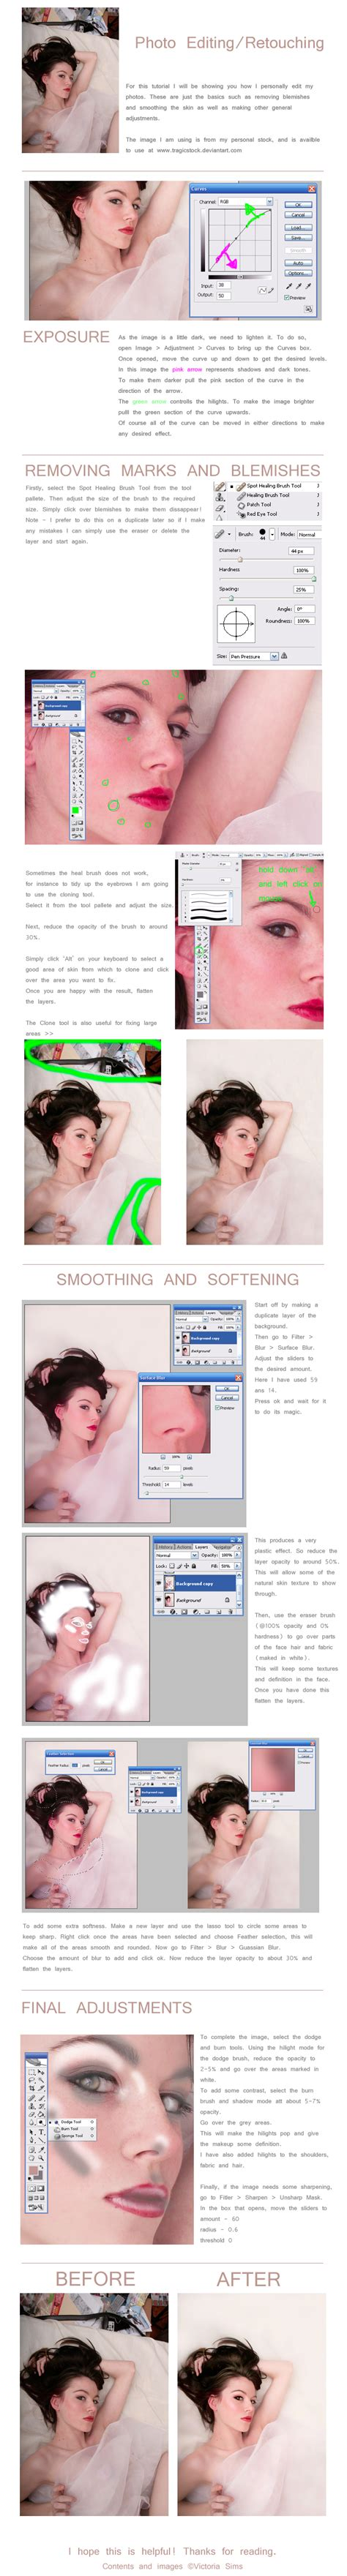 photo retouch tutorial adobe photoshop basic photo editing tutorial by thetragictruth of me on